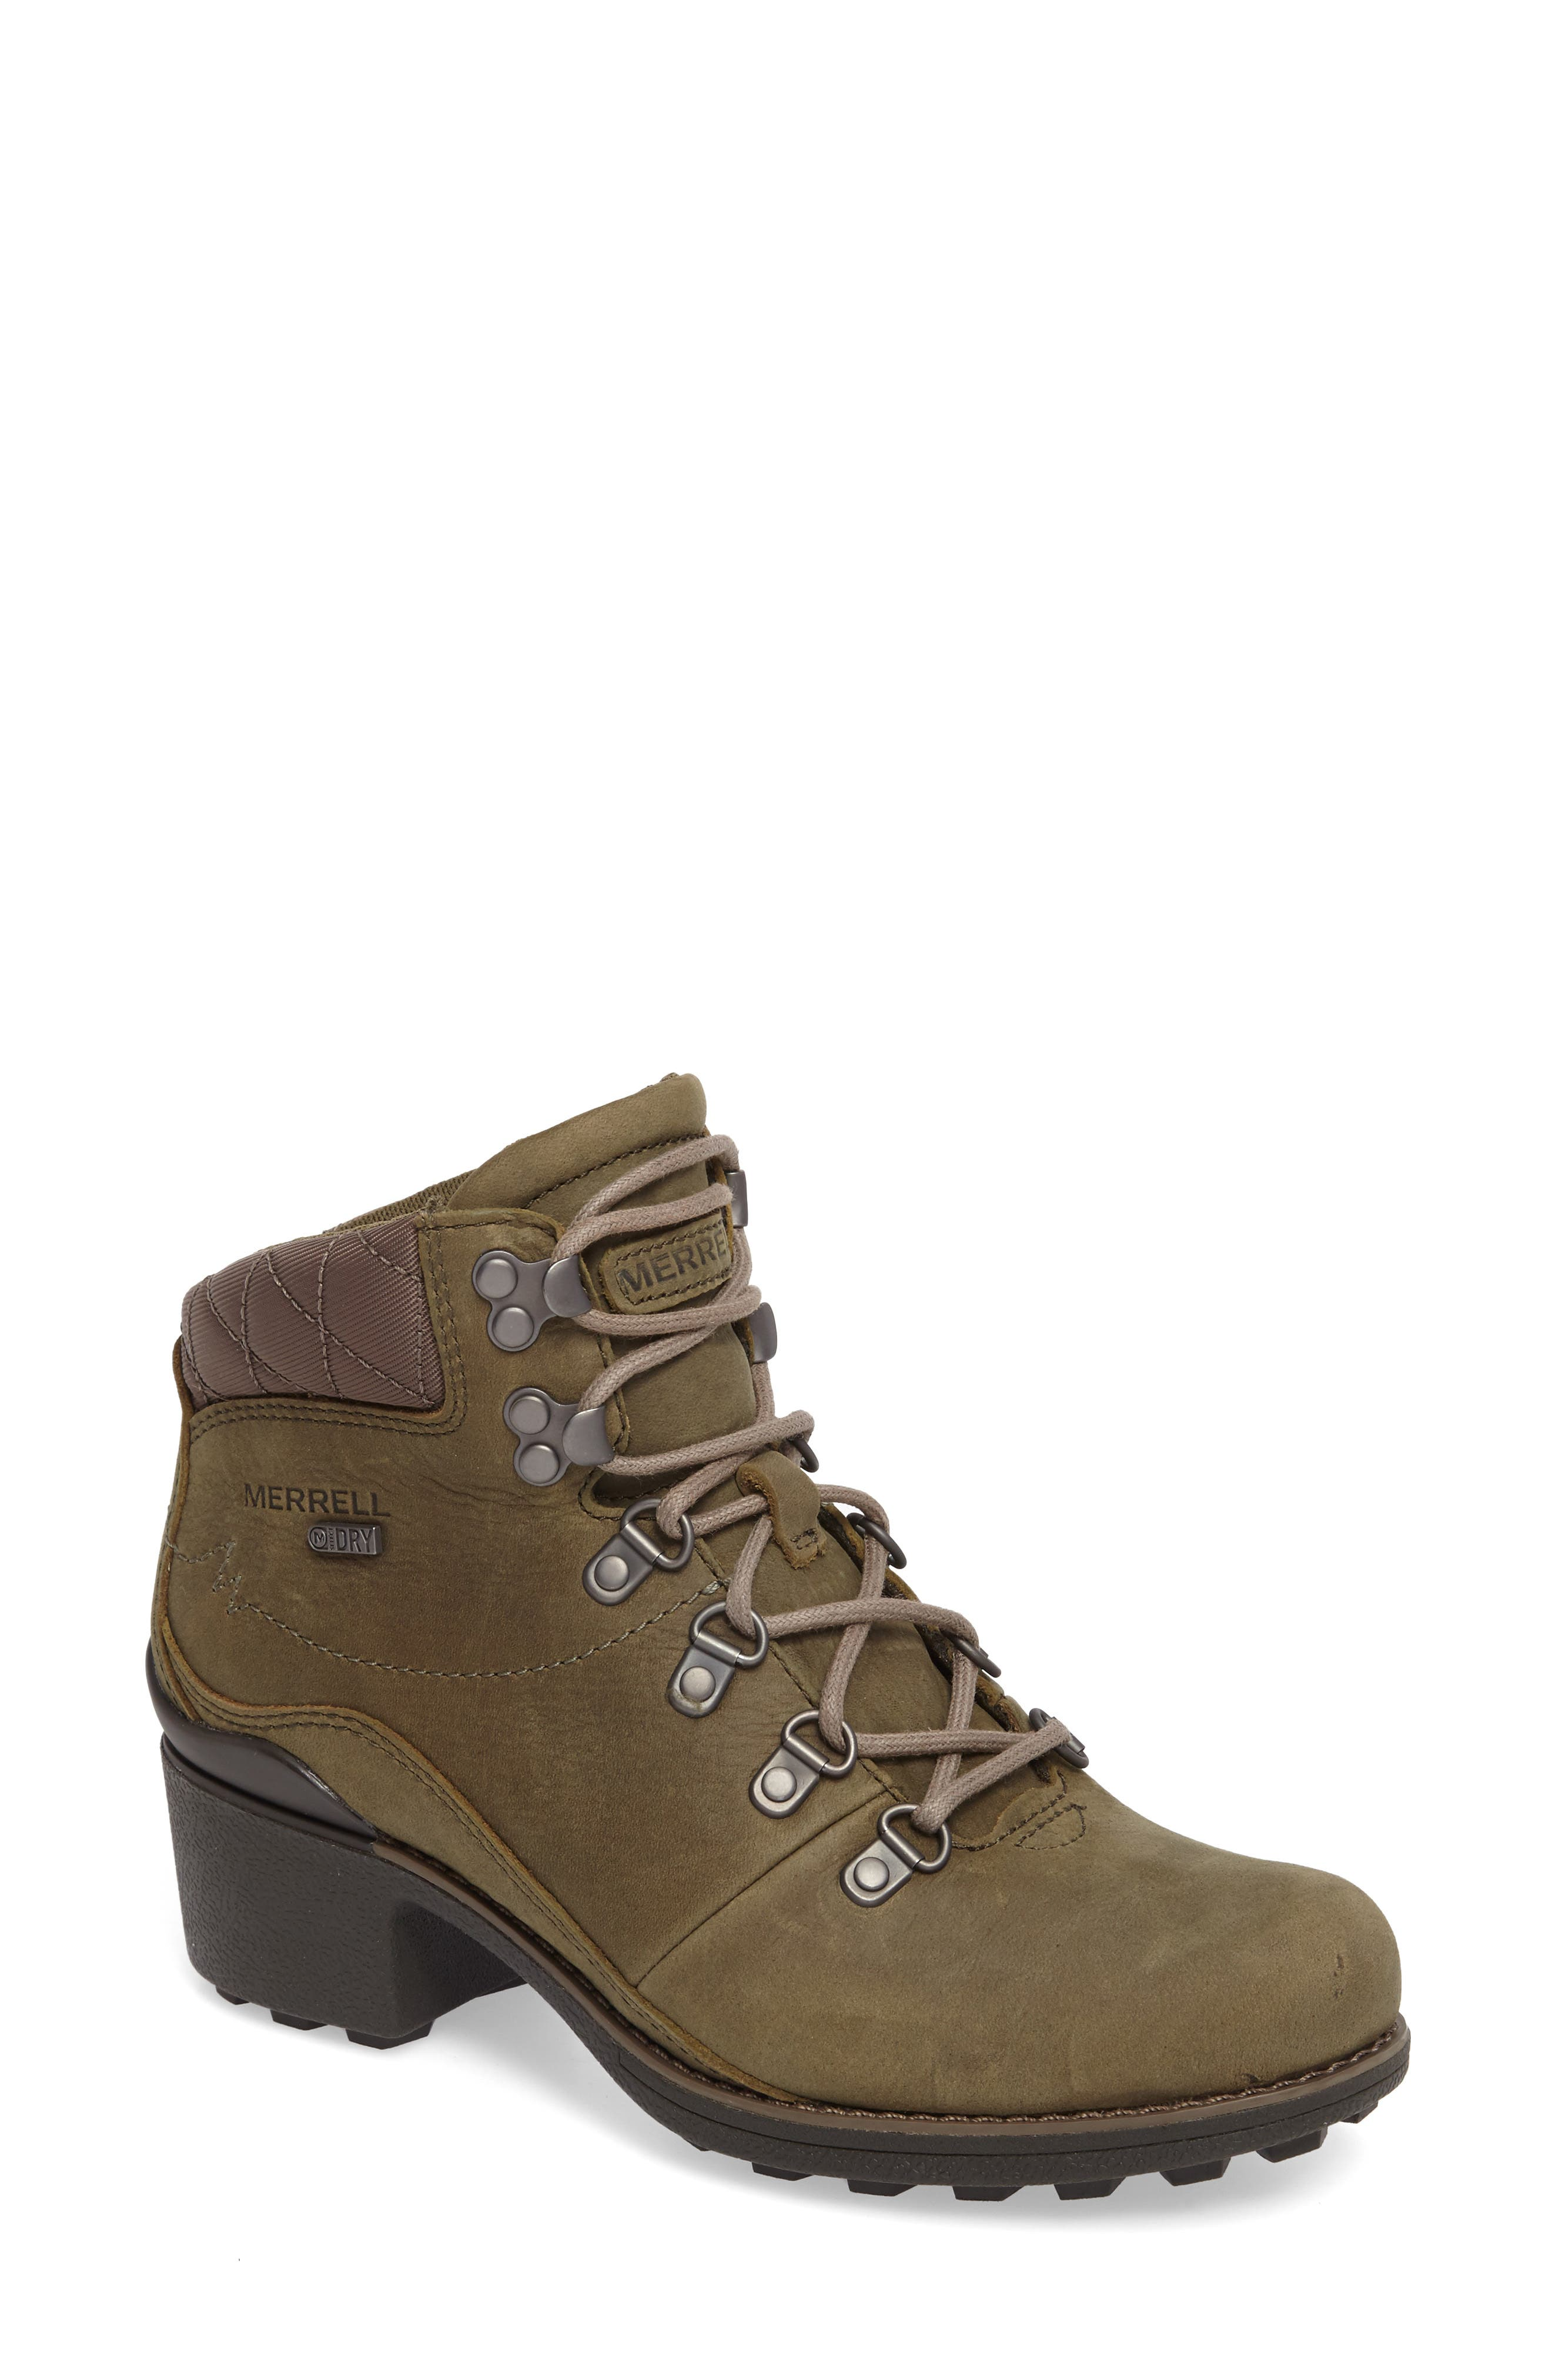 Merrell Chateau Mid Lace Waterproof Bootie- Green